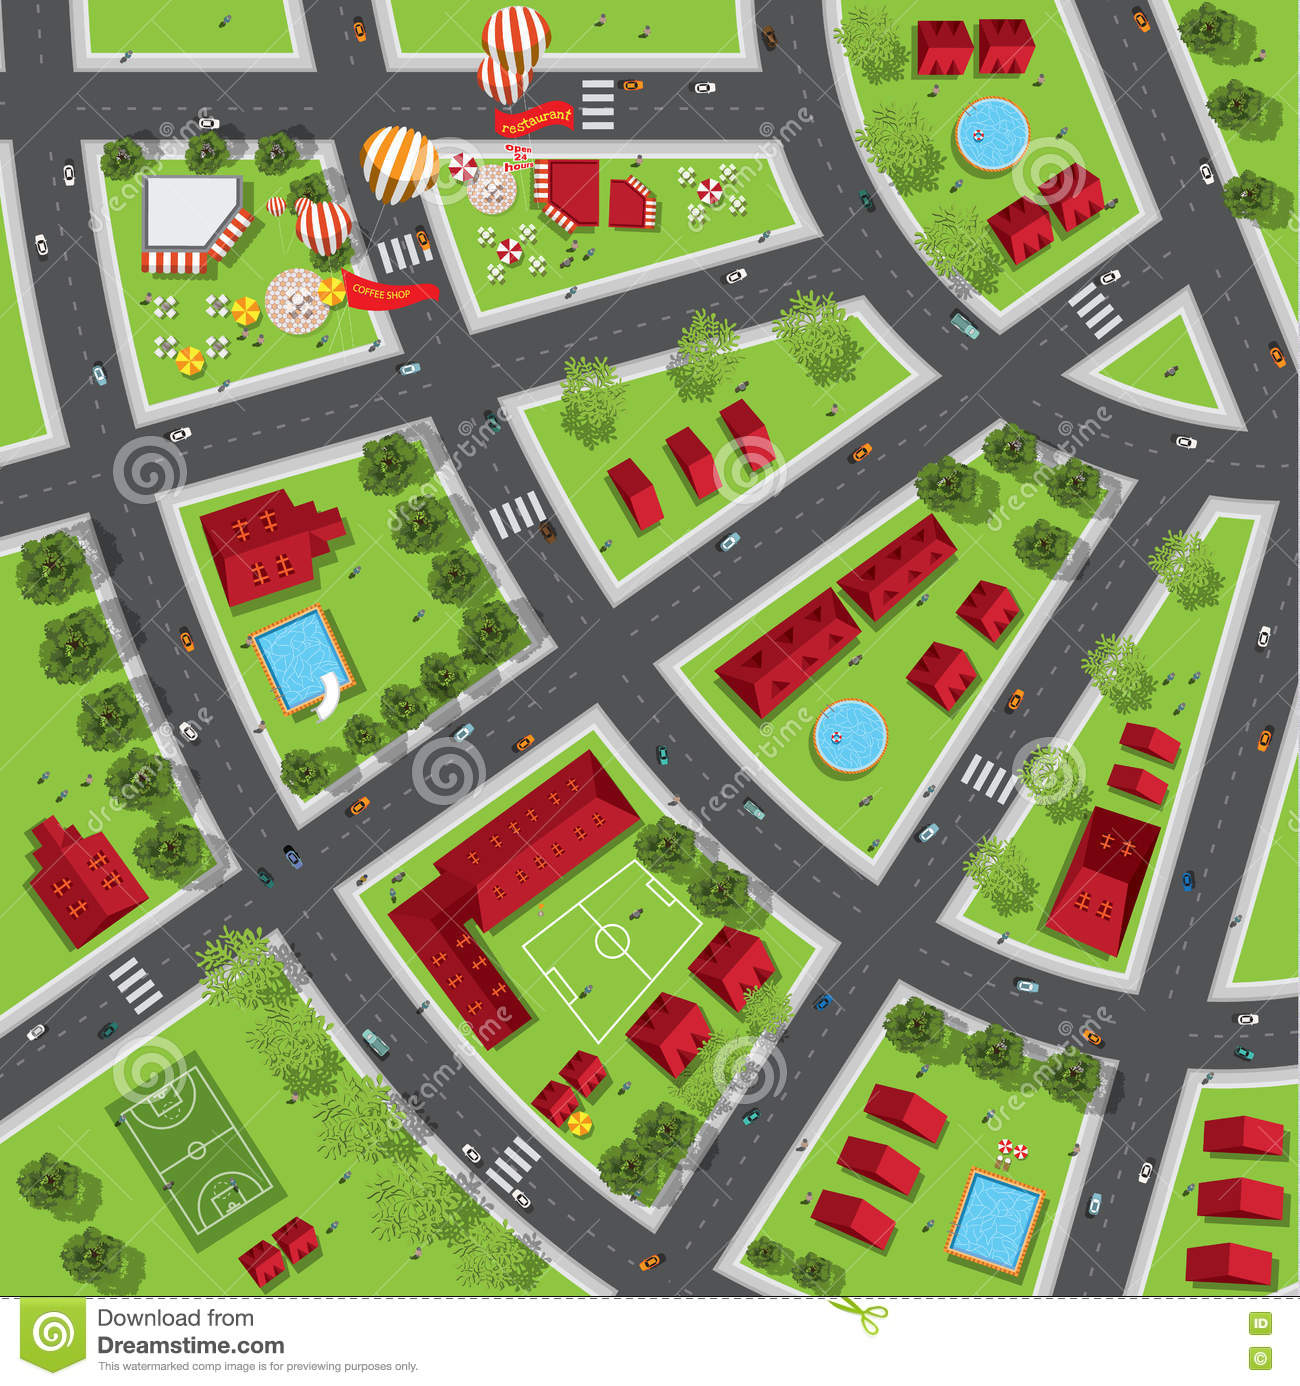 Top view of the city of streets, roads, houses, treetop